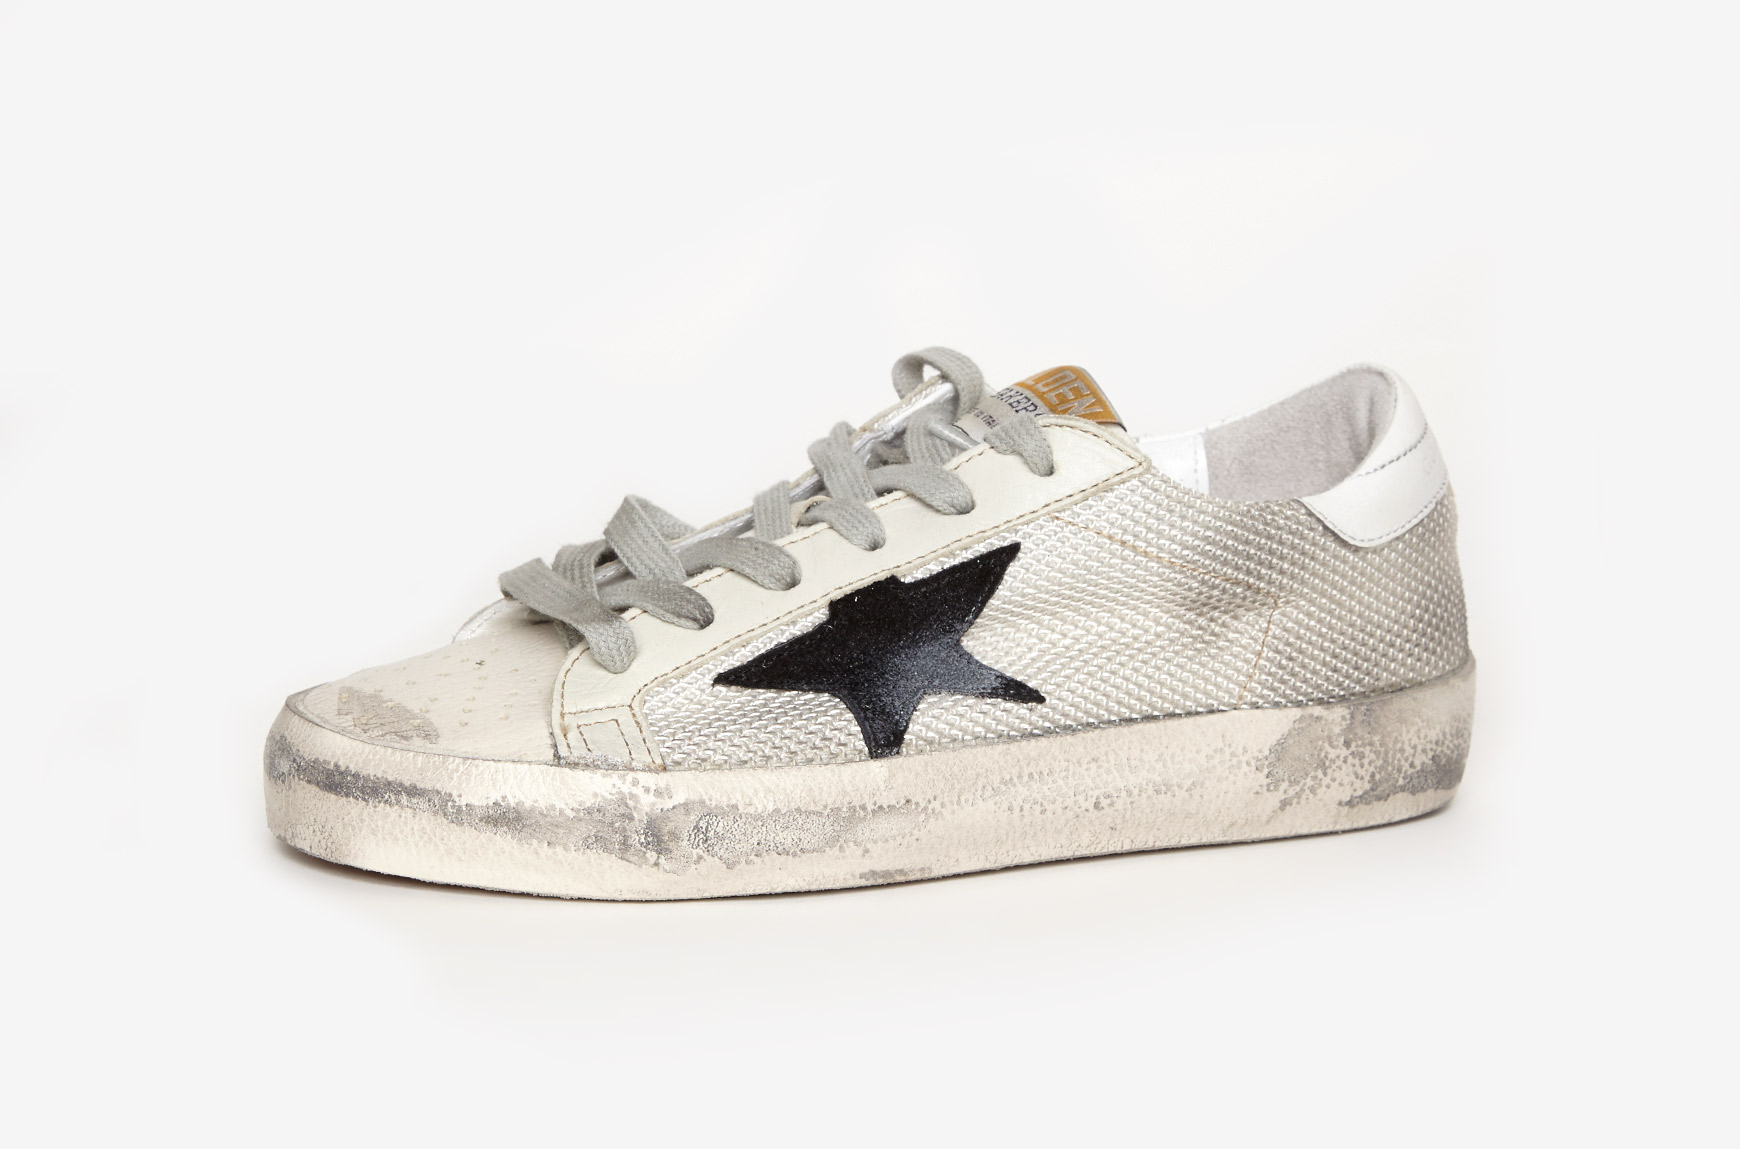 grey goose trainers Online Shopping for